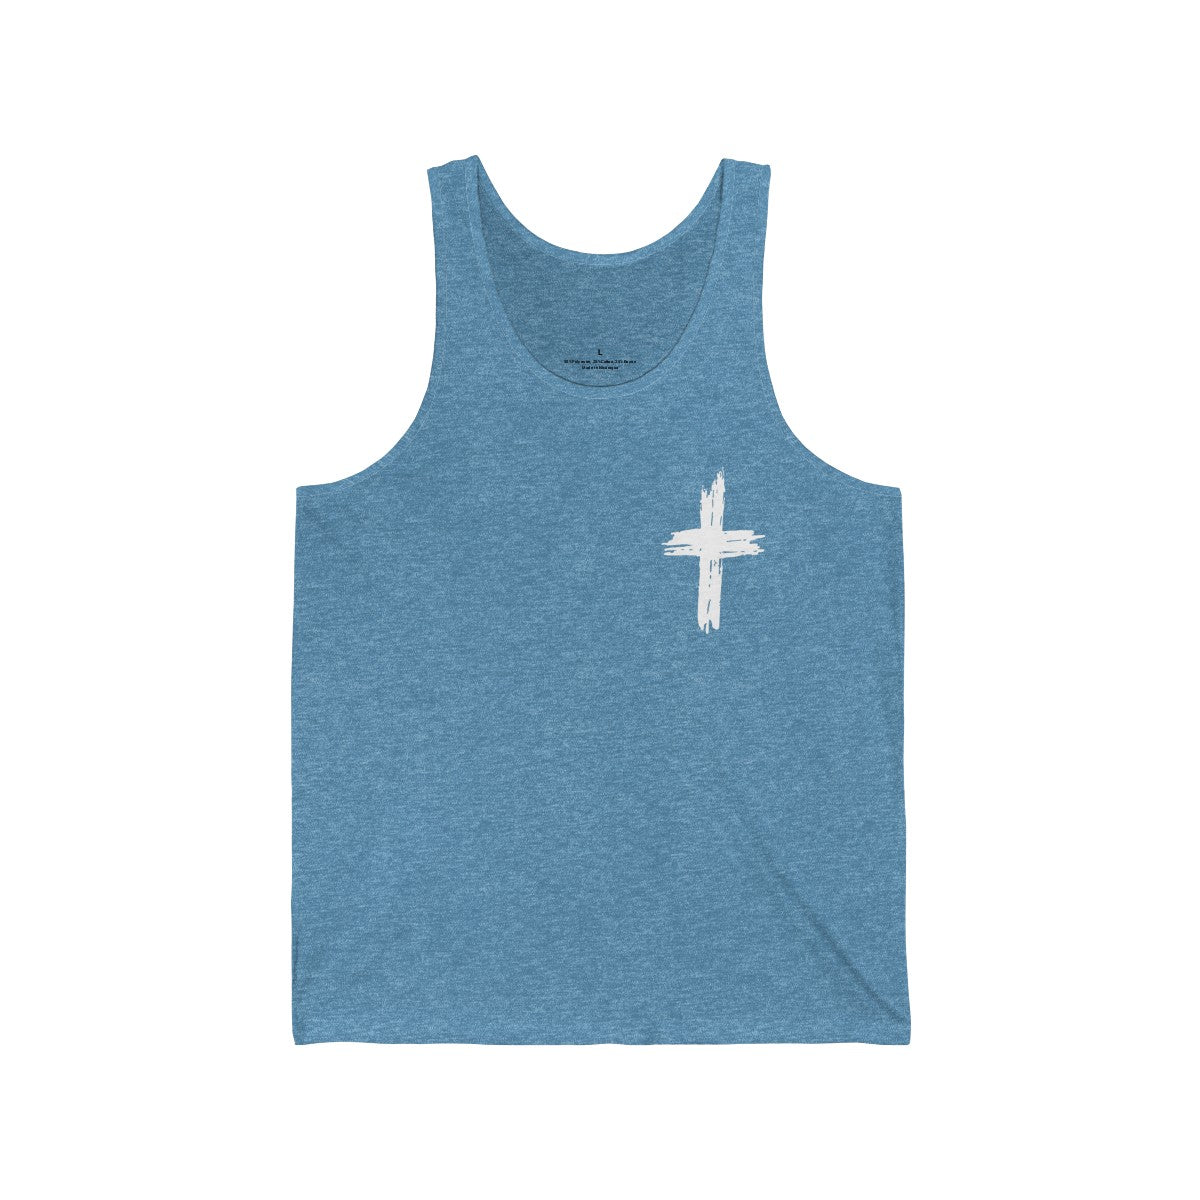 Odyssey Cross My Heart Men's Muscle Tee